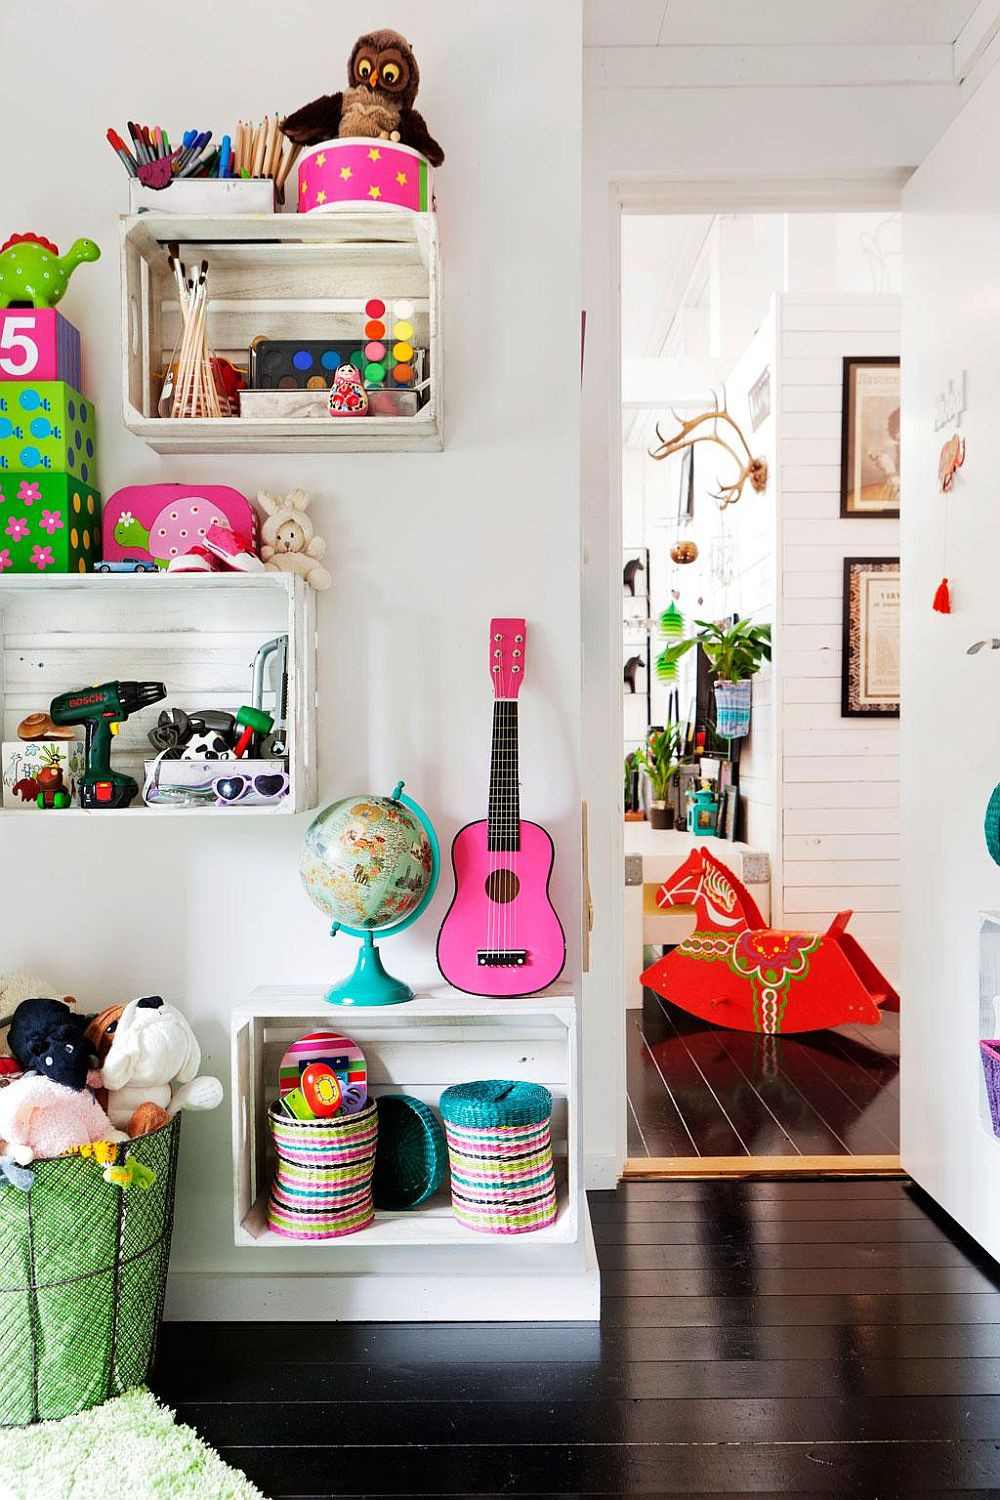 Best ideas about DIY For Kids Rooms . Save or Pin 11 Space Saving DIY Kids' Room Storage Ideas that Help Now.